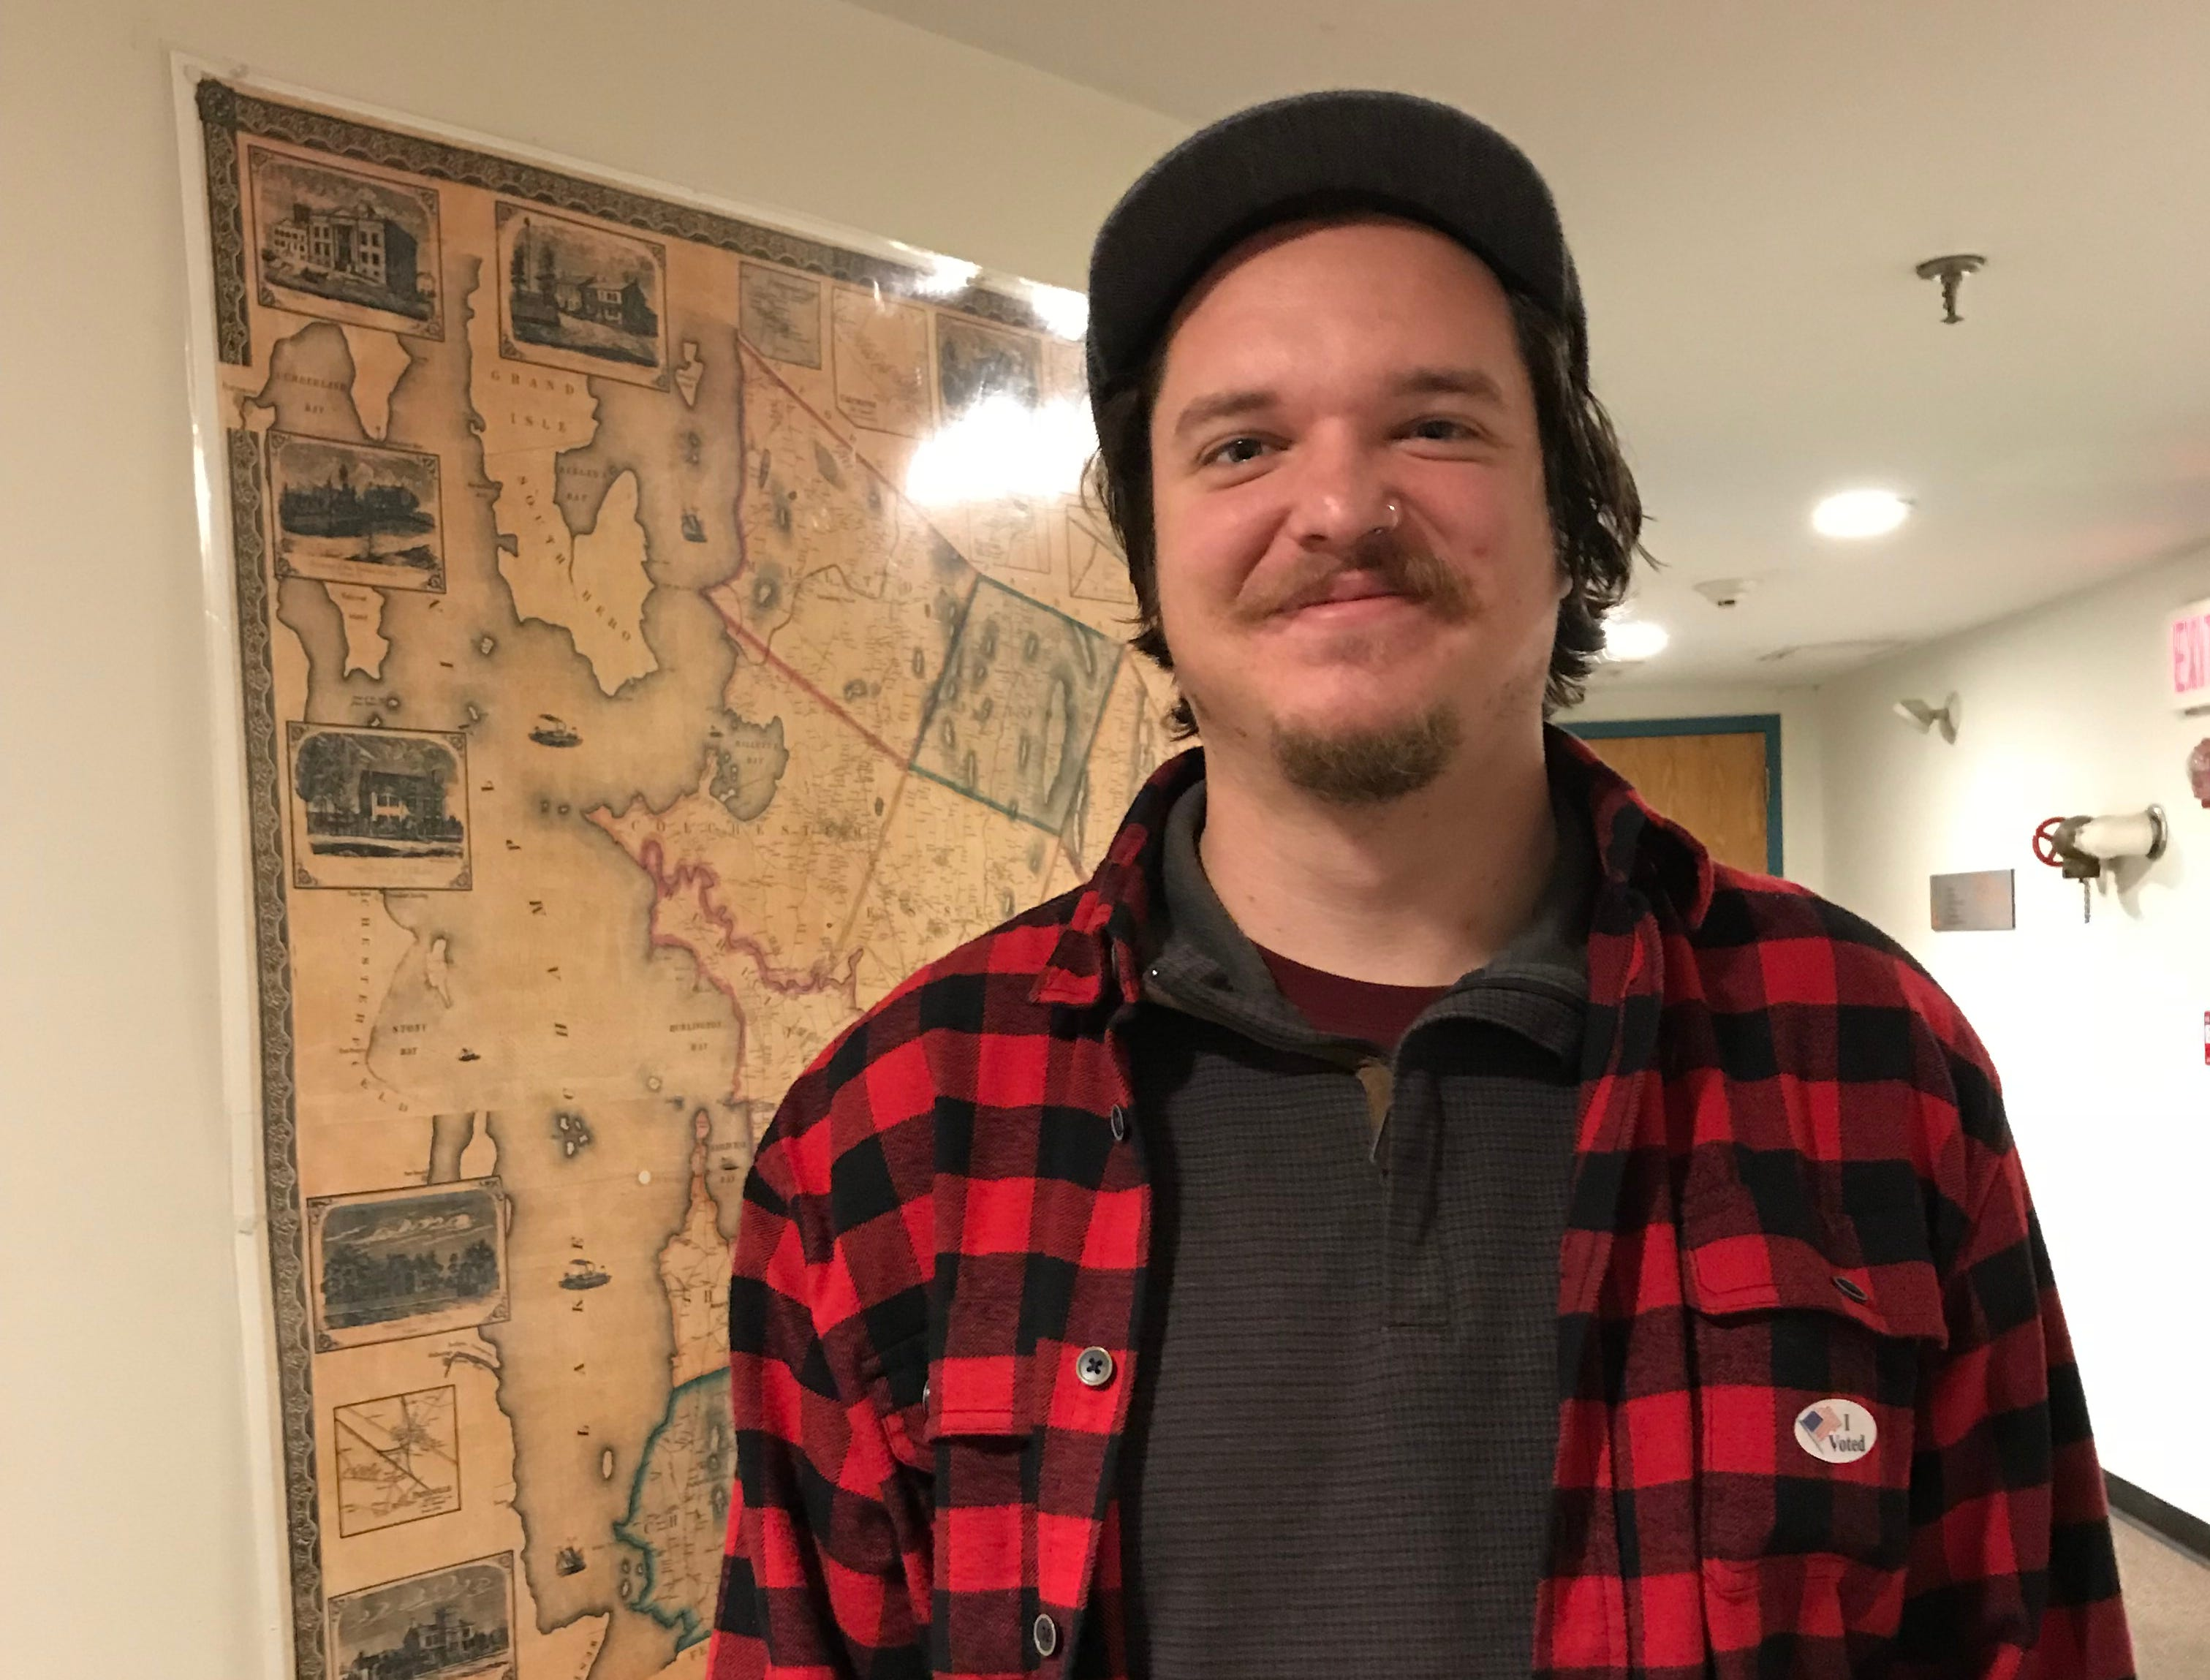 University of Vermont student Alec Tatro seen after he voted at Burlington's Ward 8 polling station at the Fletcher Free Library on Tuesday, Nov. 6, 2018.